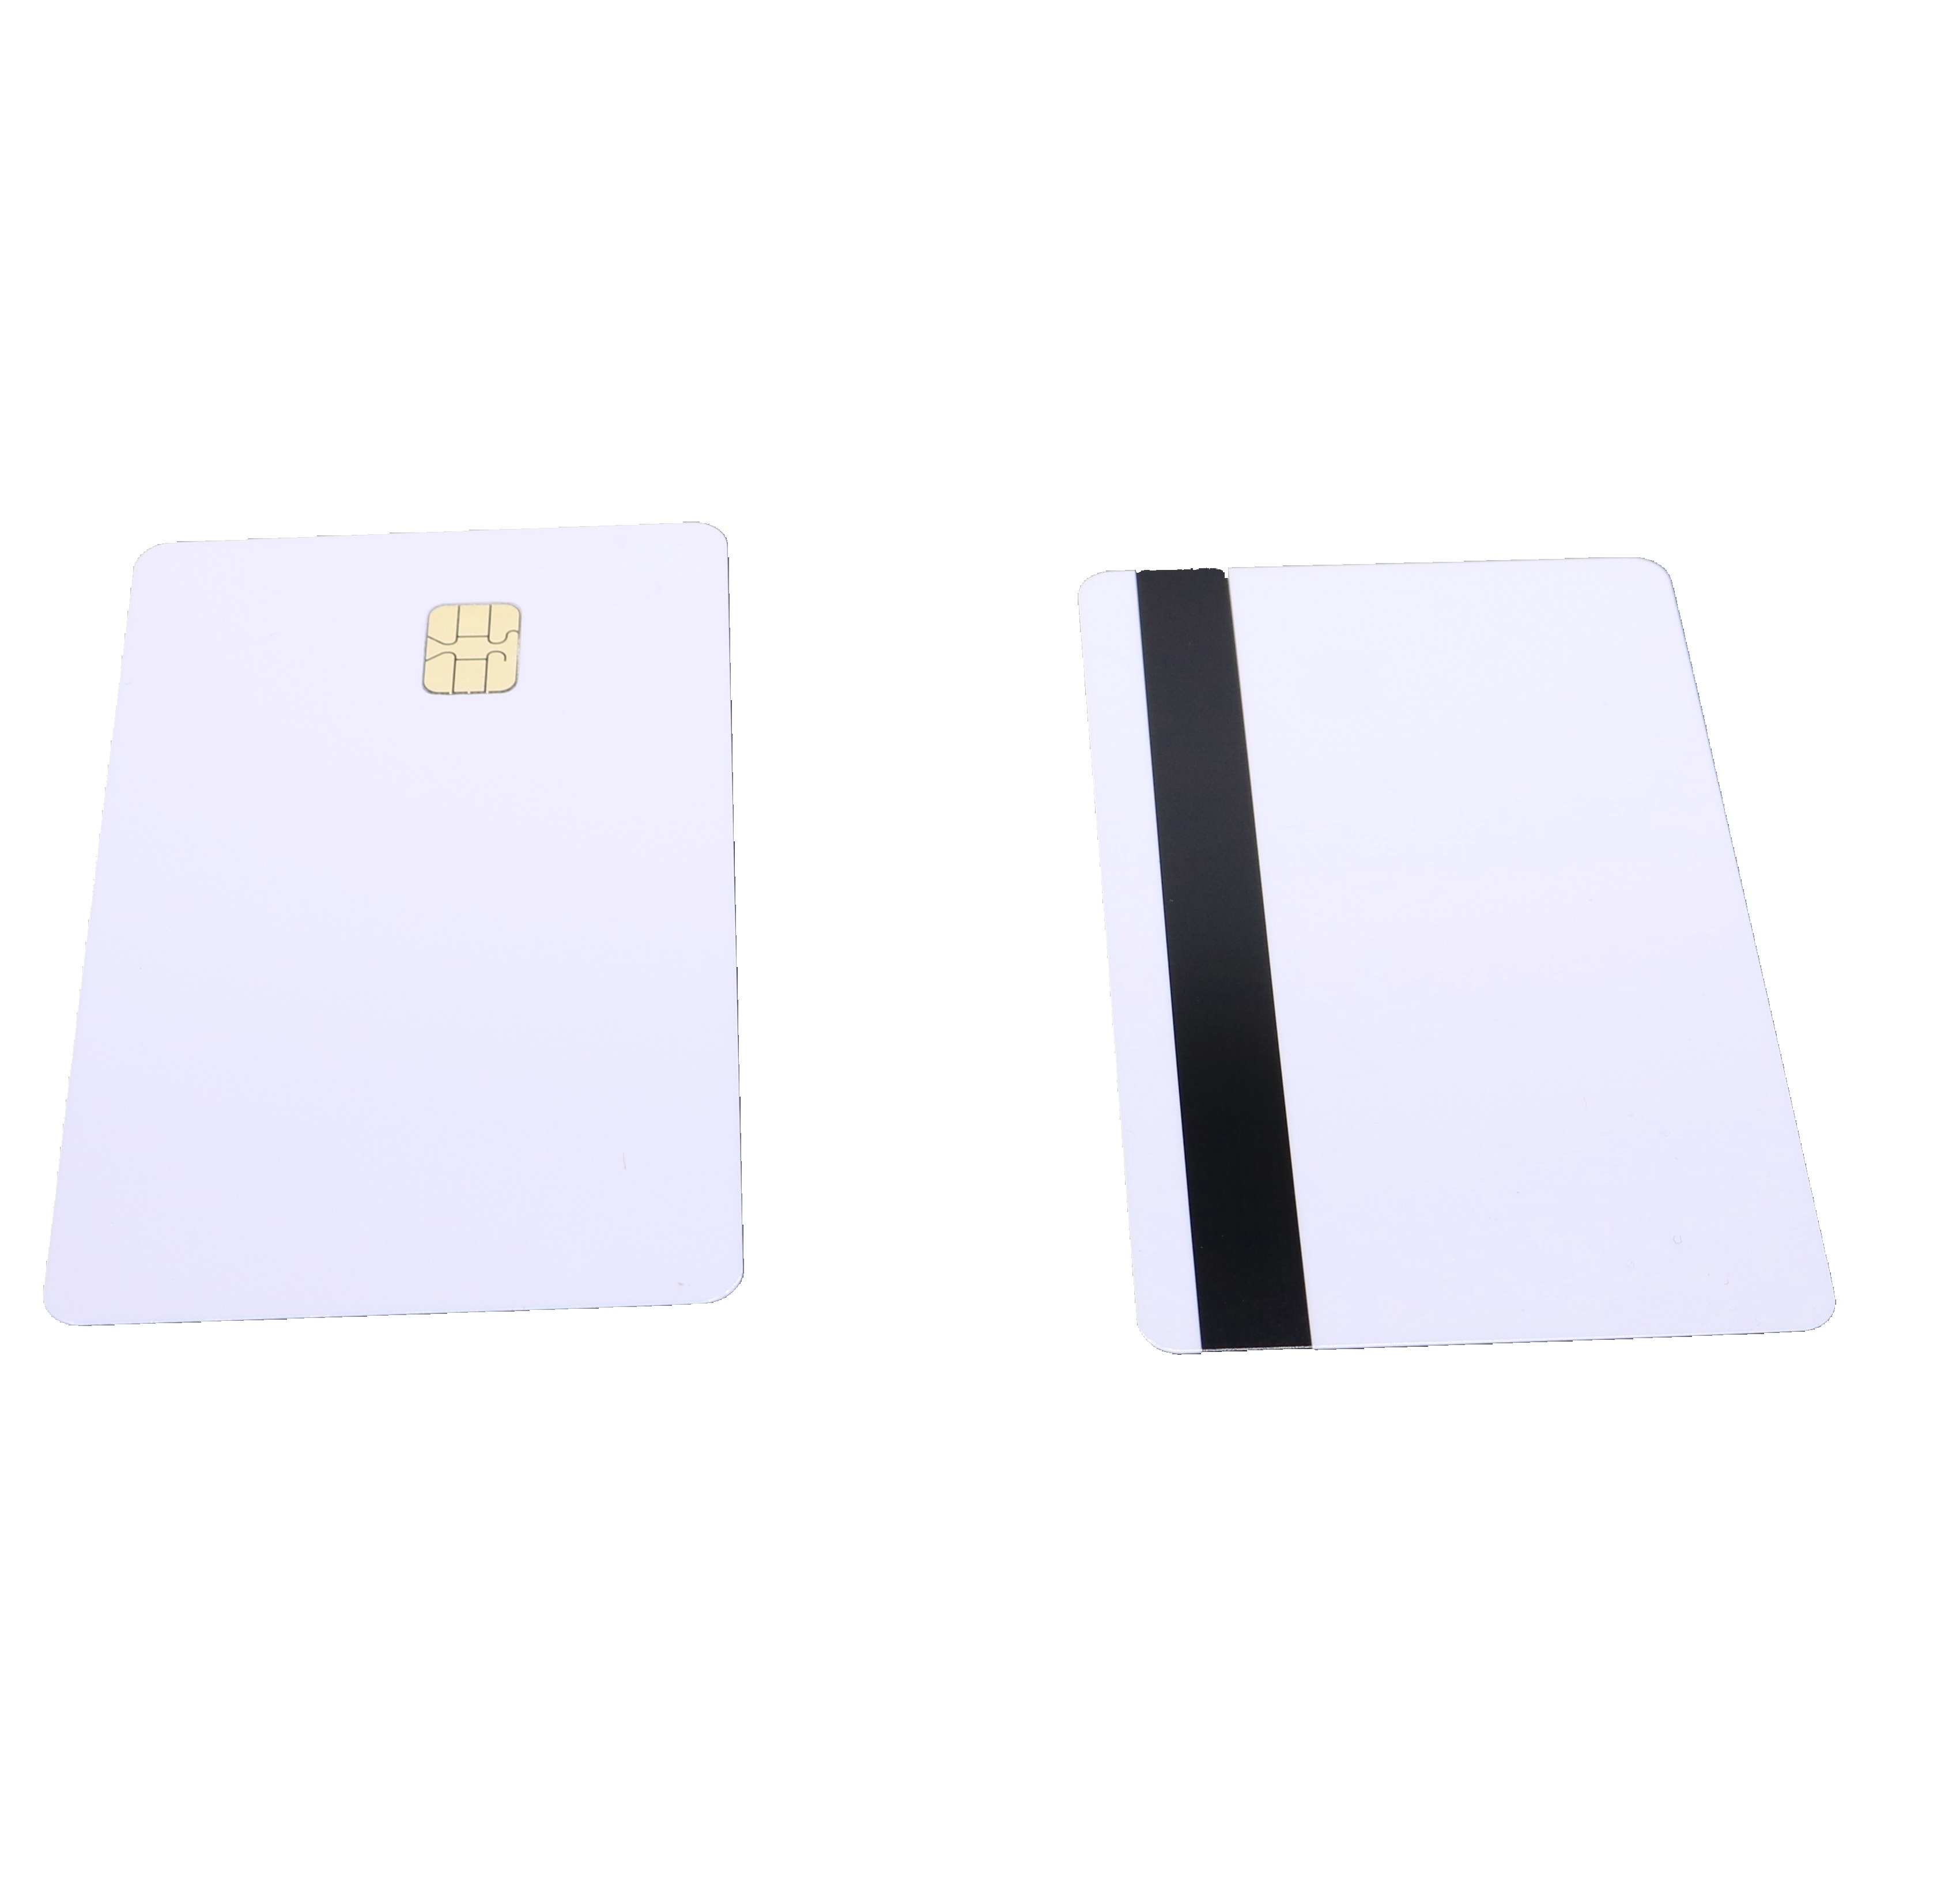 SLE4442 Chip 3track Hi CO Magnetic Stripe Contact IC Composite Card